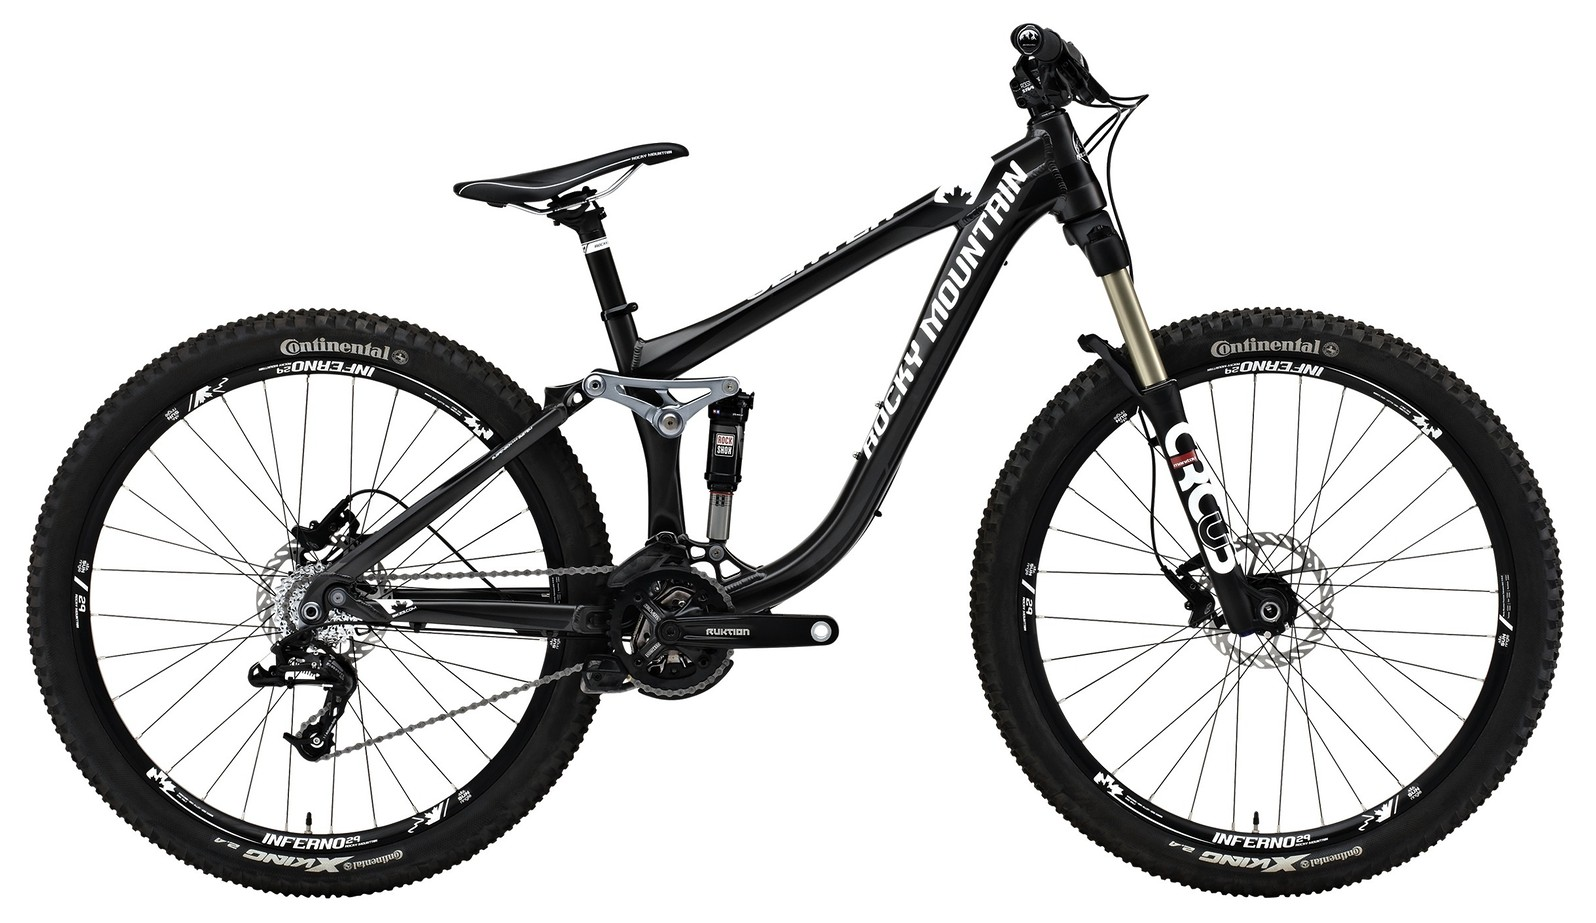 2014 Rocky Mountain Slayer SS Bike bike - 2014 Rocky Mountain Slayer SS